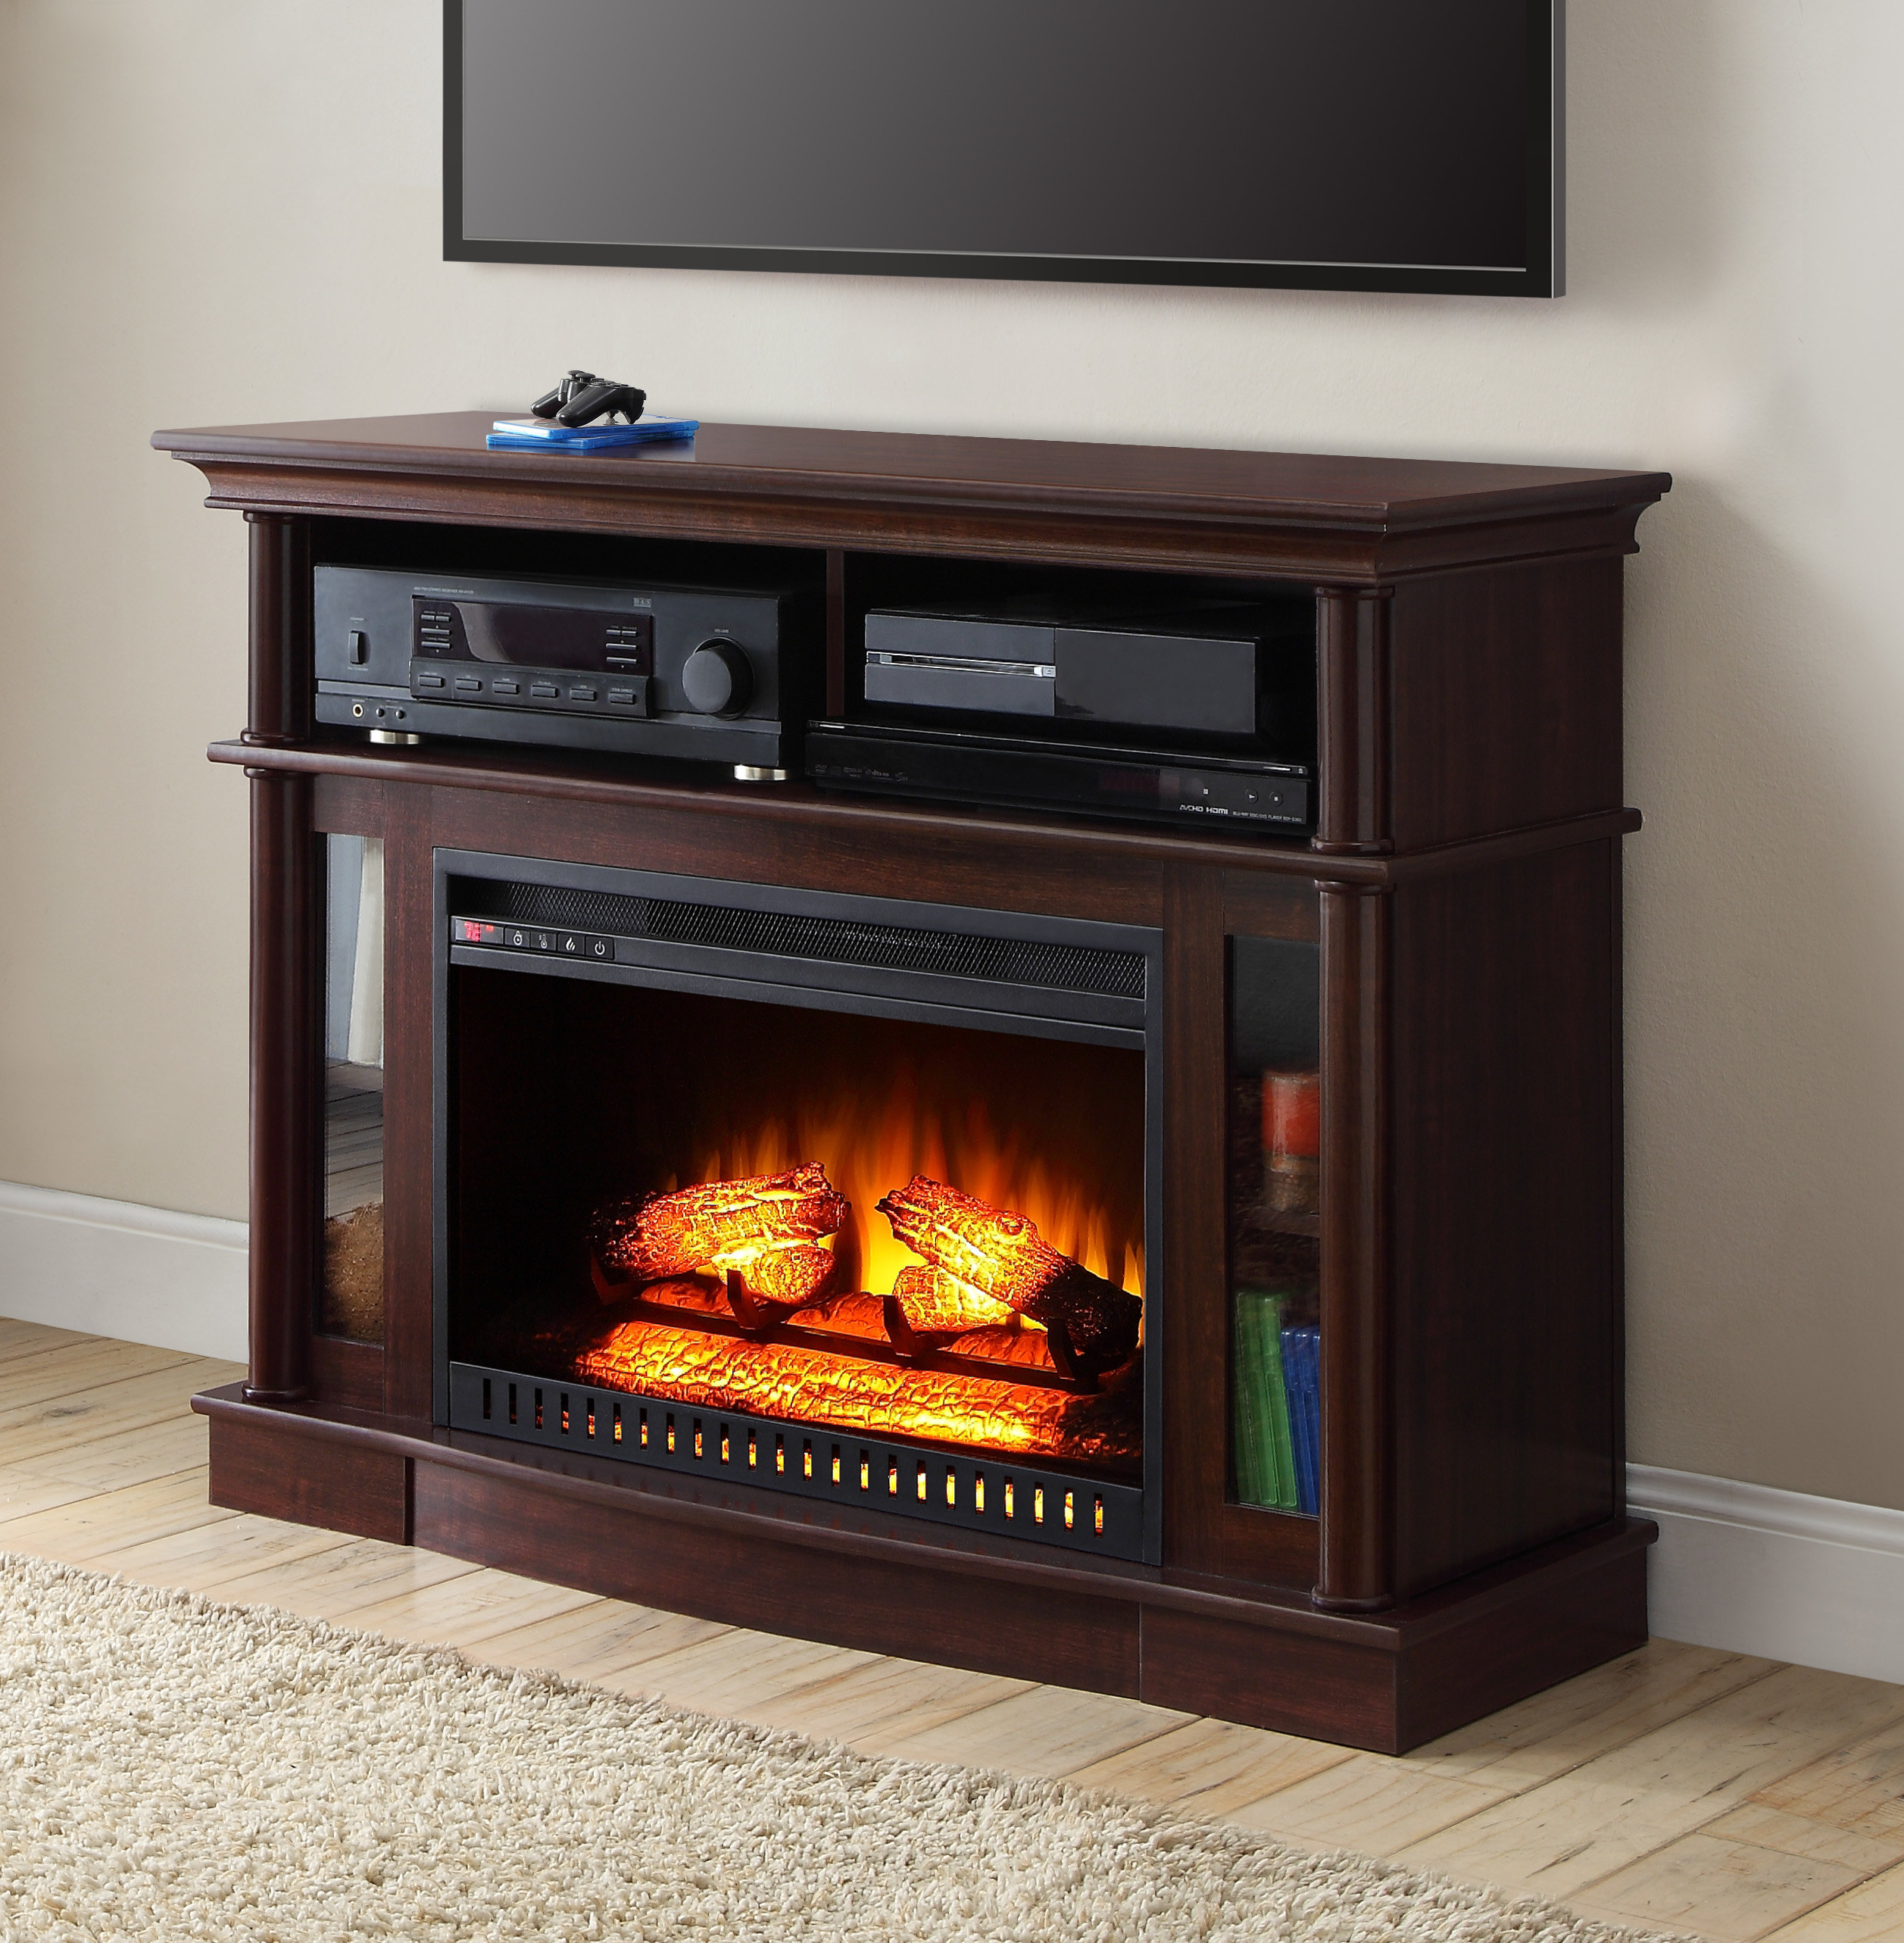 A fireplace console